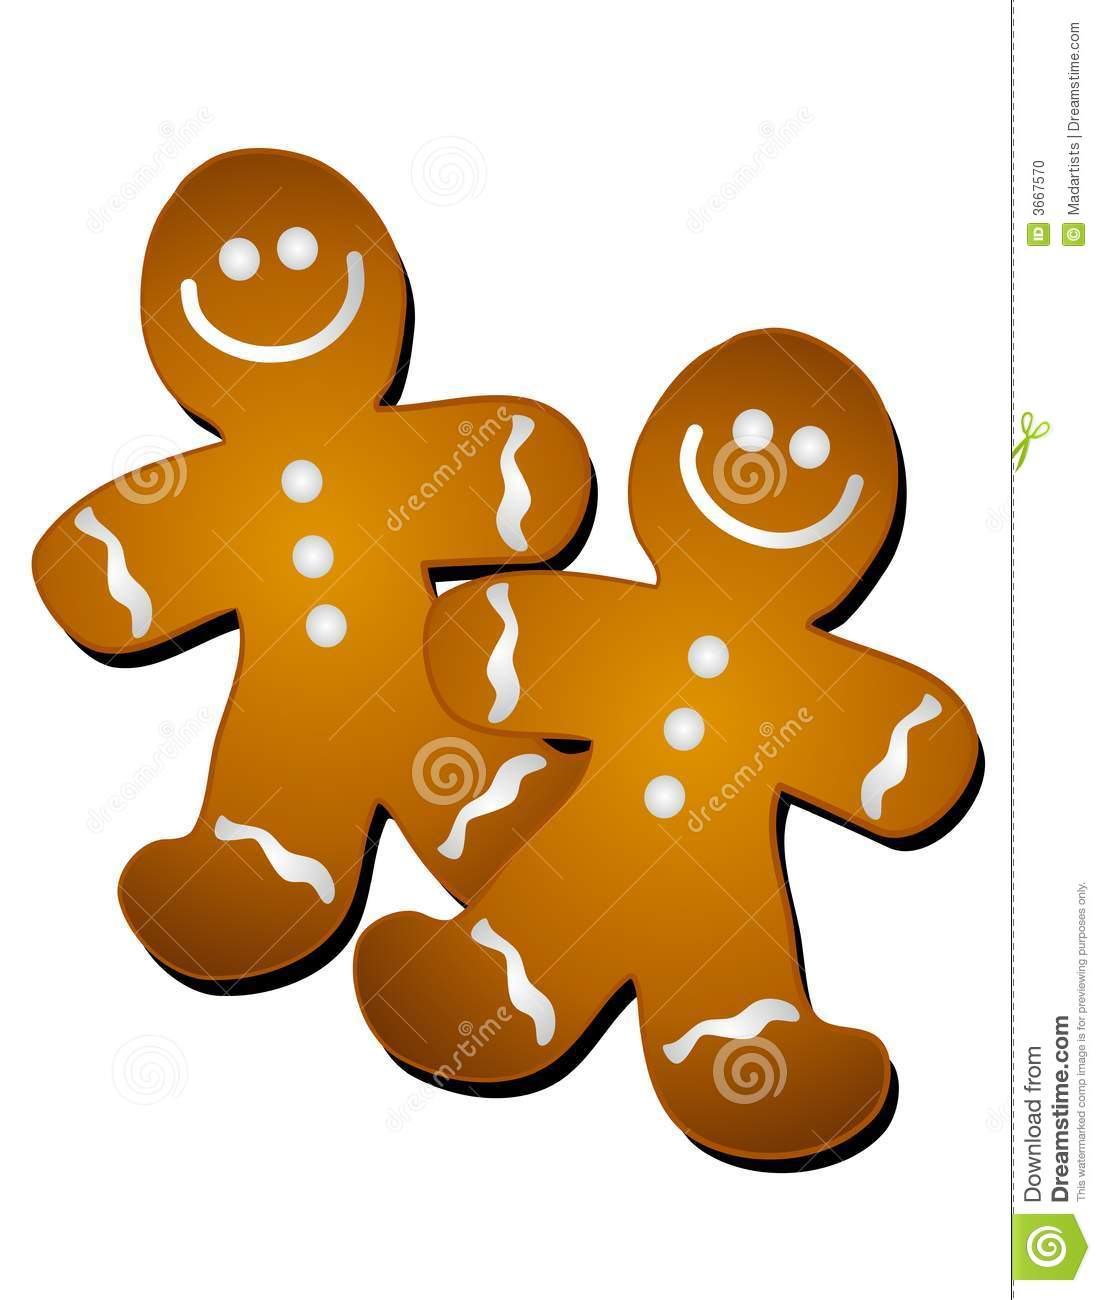 gingerbread man cookies clip art stock illustration illustration rh dreamstime com clip art cookies and cakes clip art cookies free